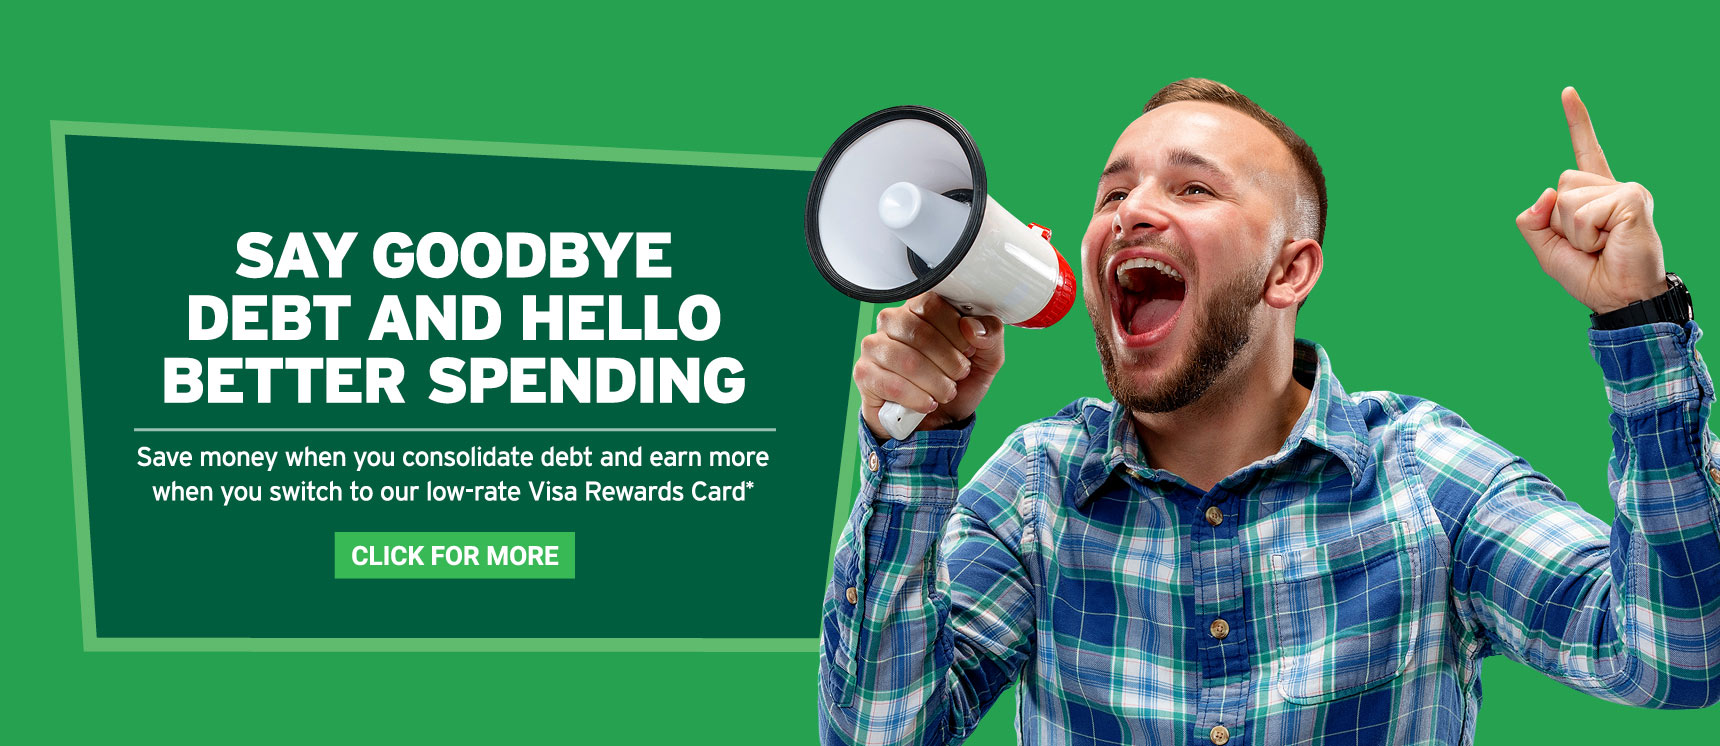 Happy man with megaphone saying goodby debt, hello better spending